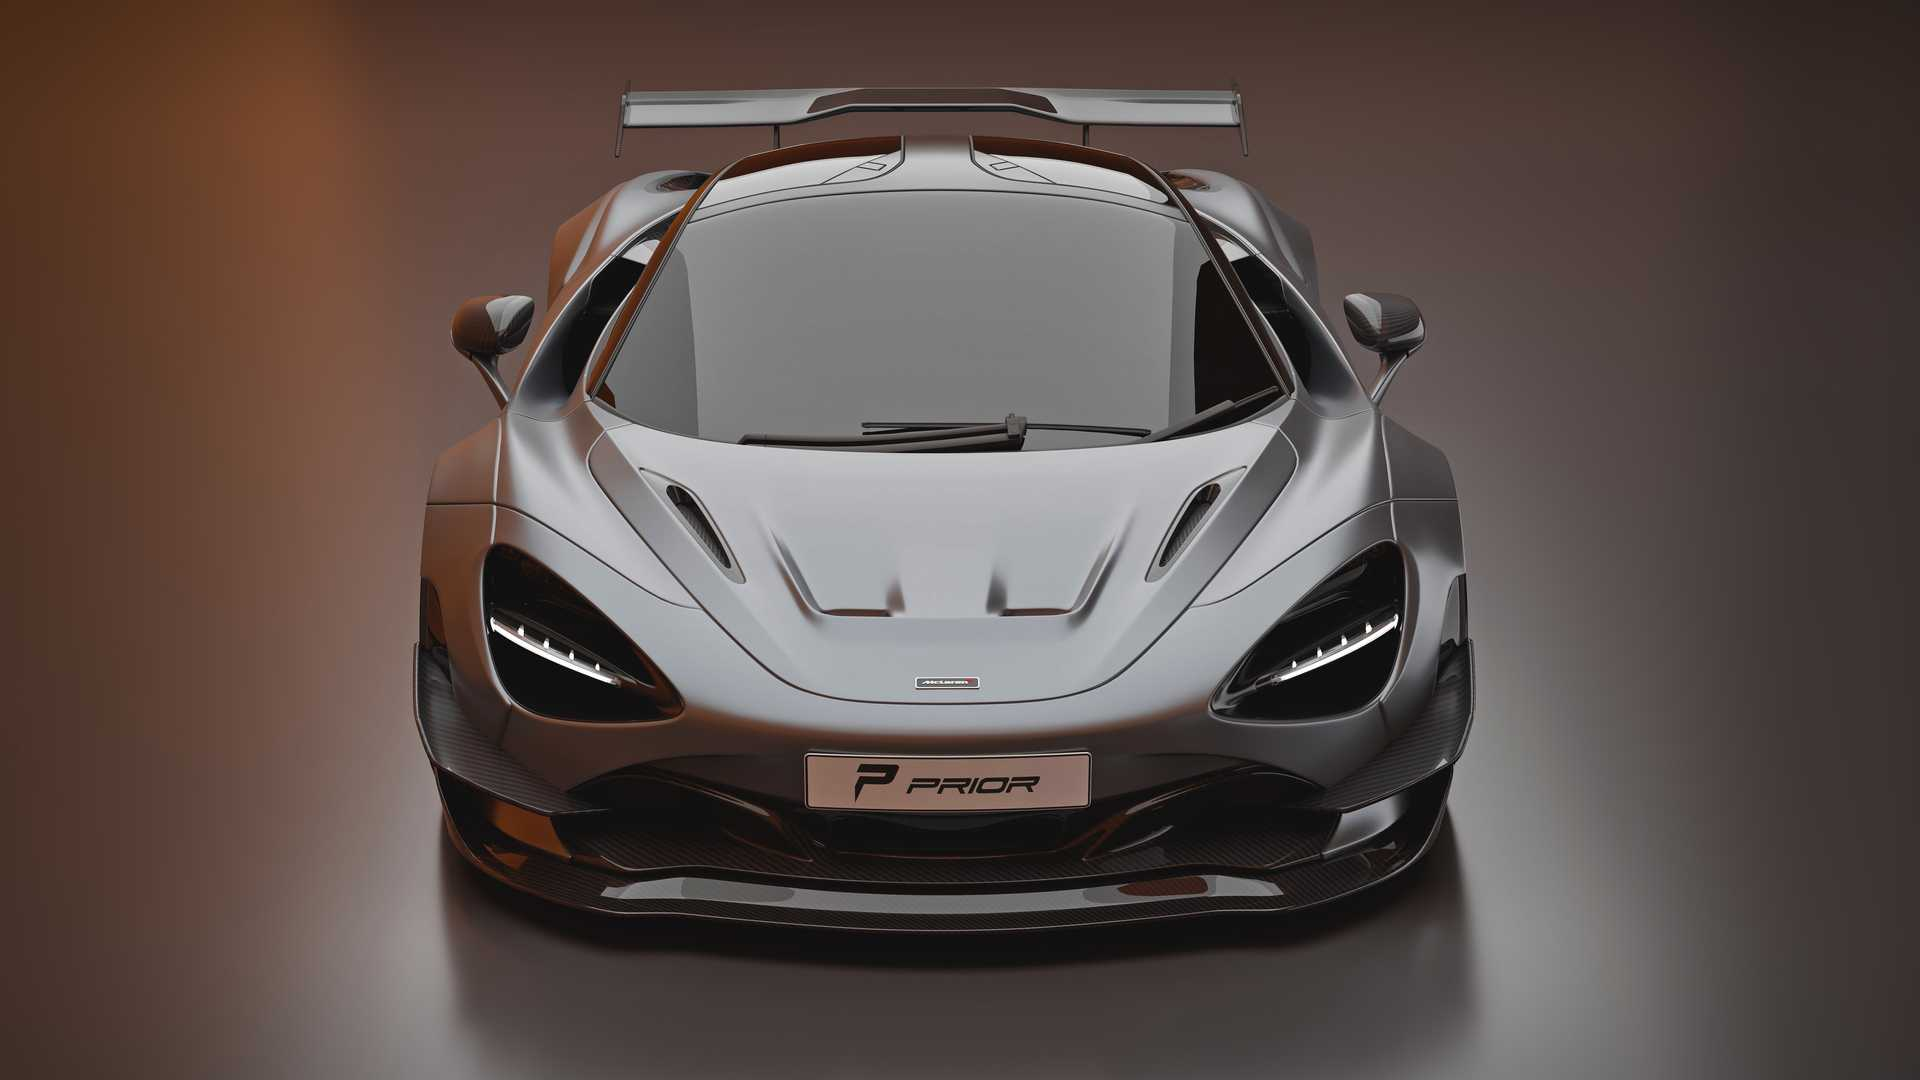 mclaren-720s-by-prior-design-8